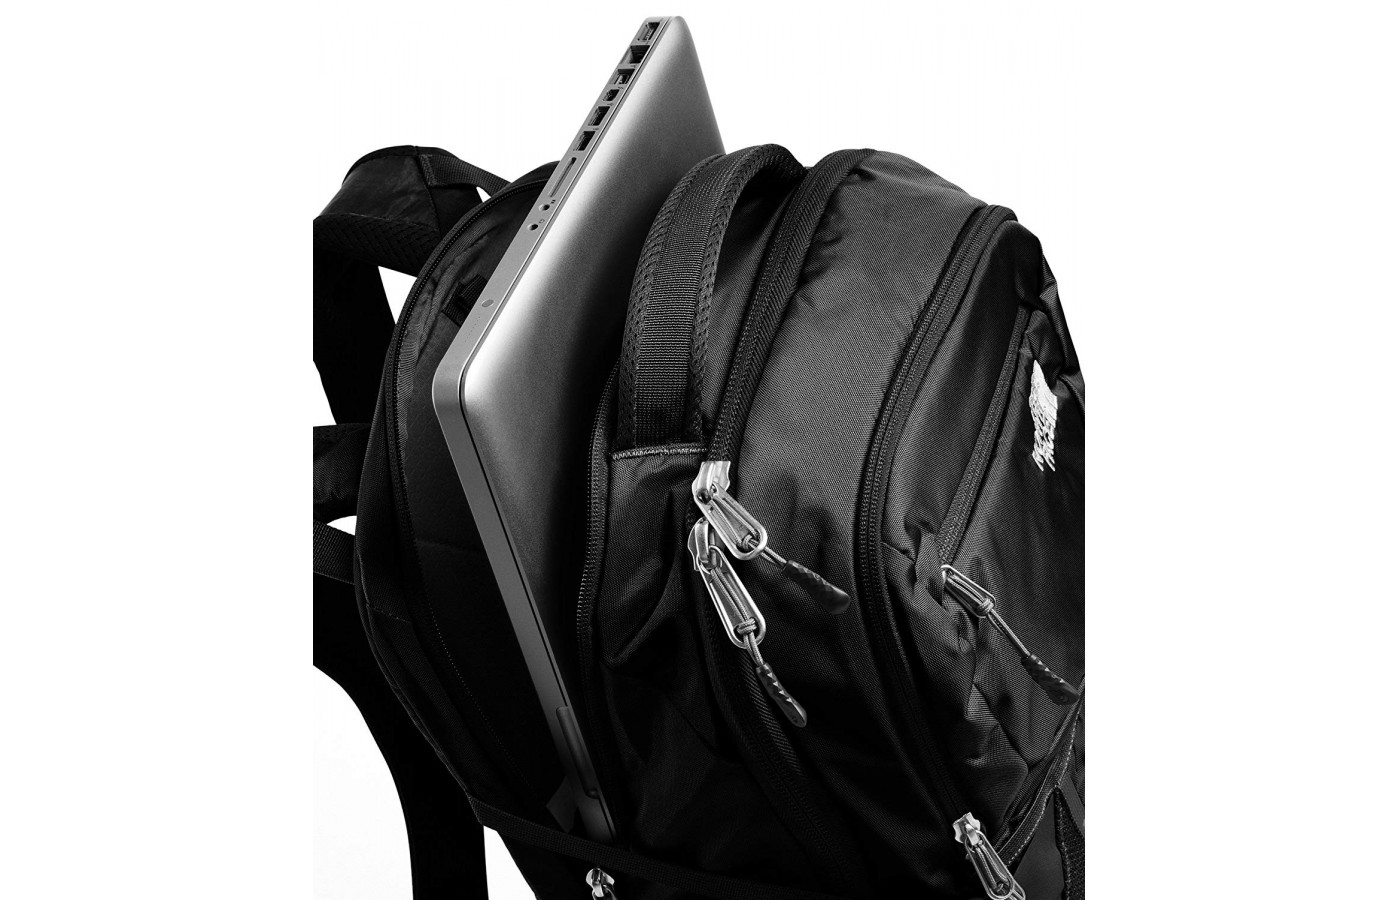 The large 31-liter capacity North Face Recon has enough space for 15-inch laptop.